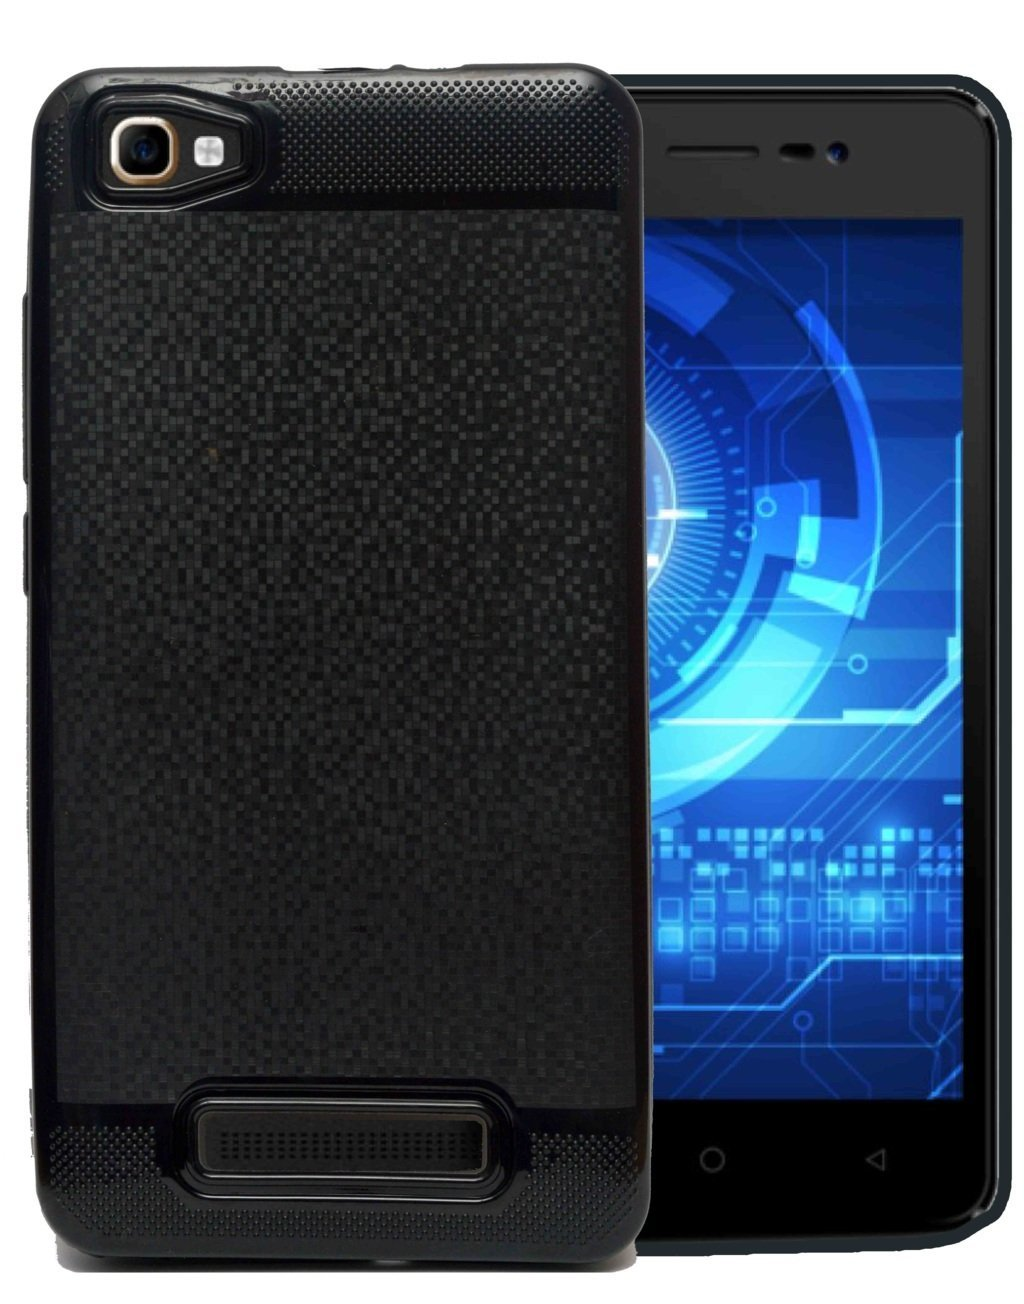 Karbonn K9 Smart Silicon Soft Back Cover Protective Case (Black)